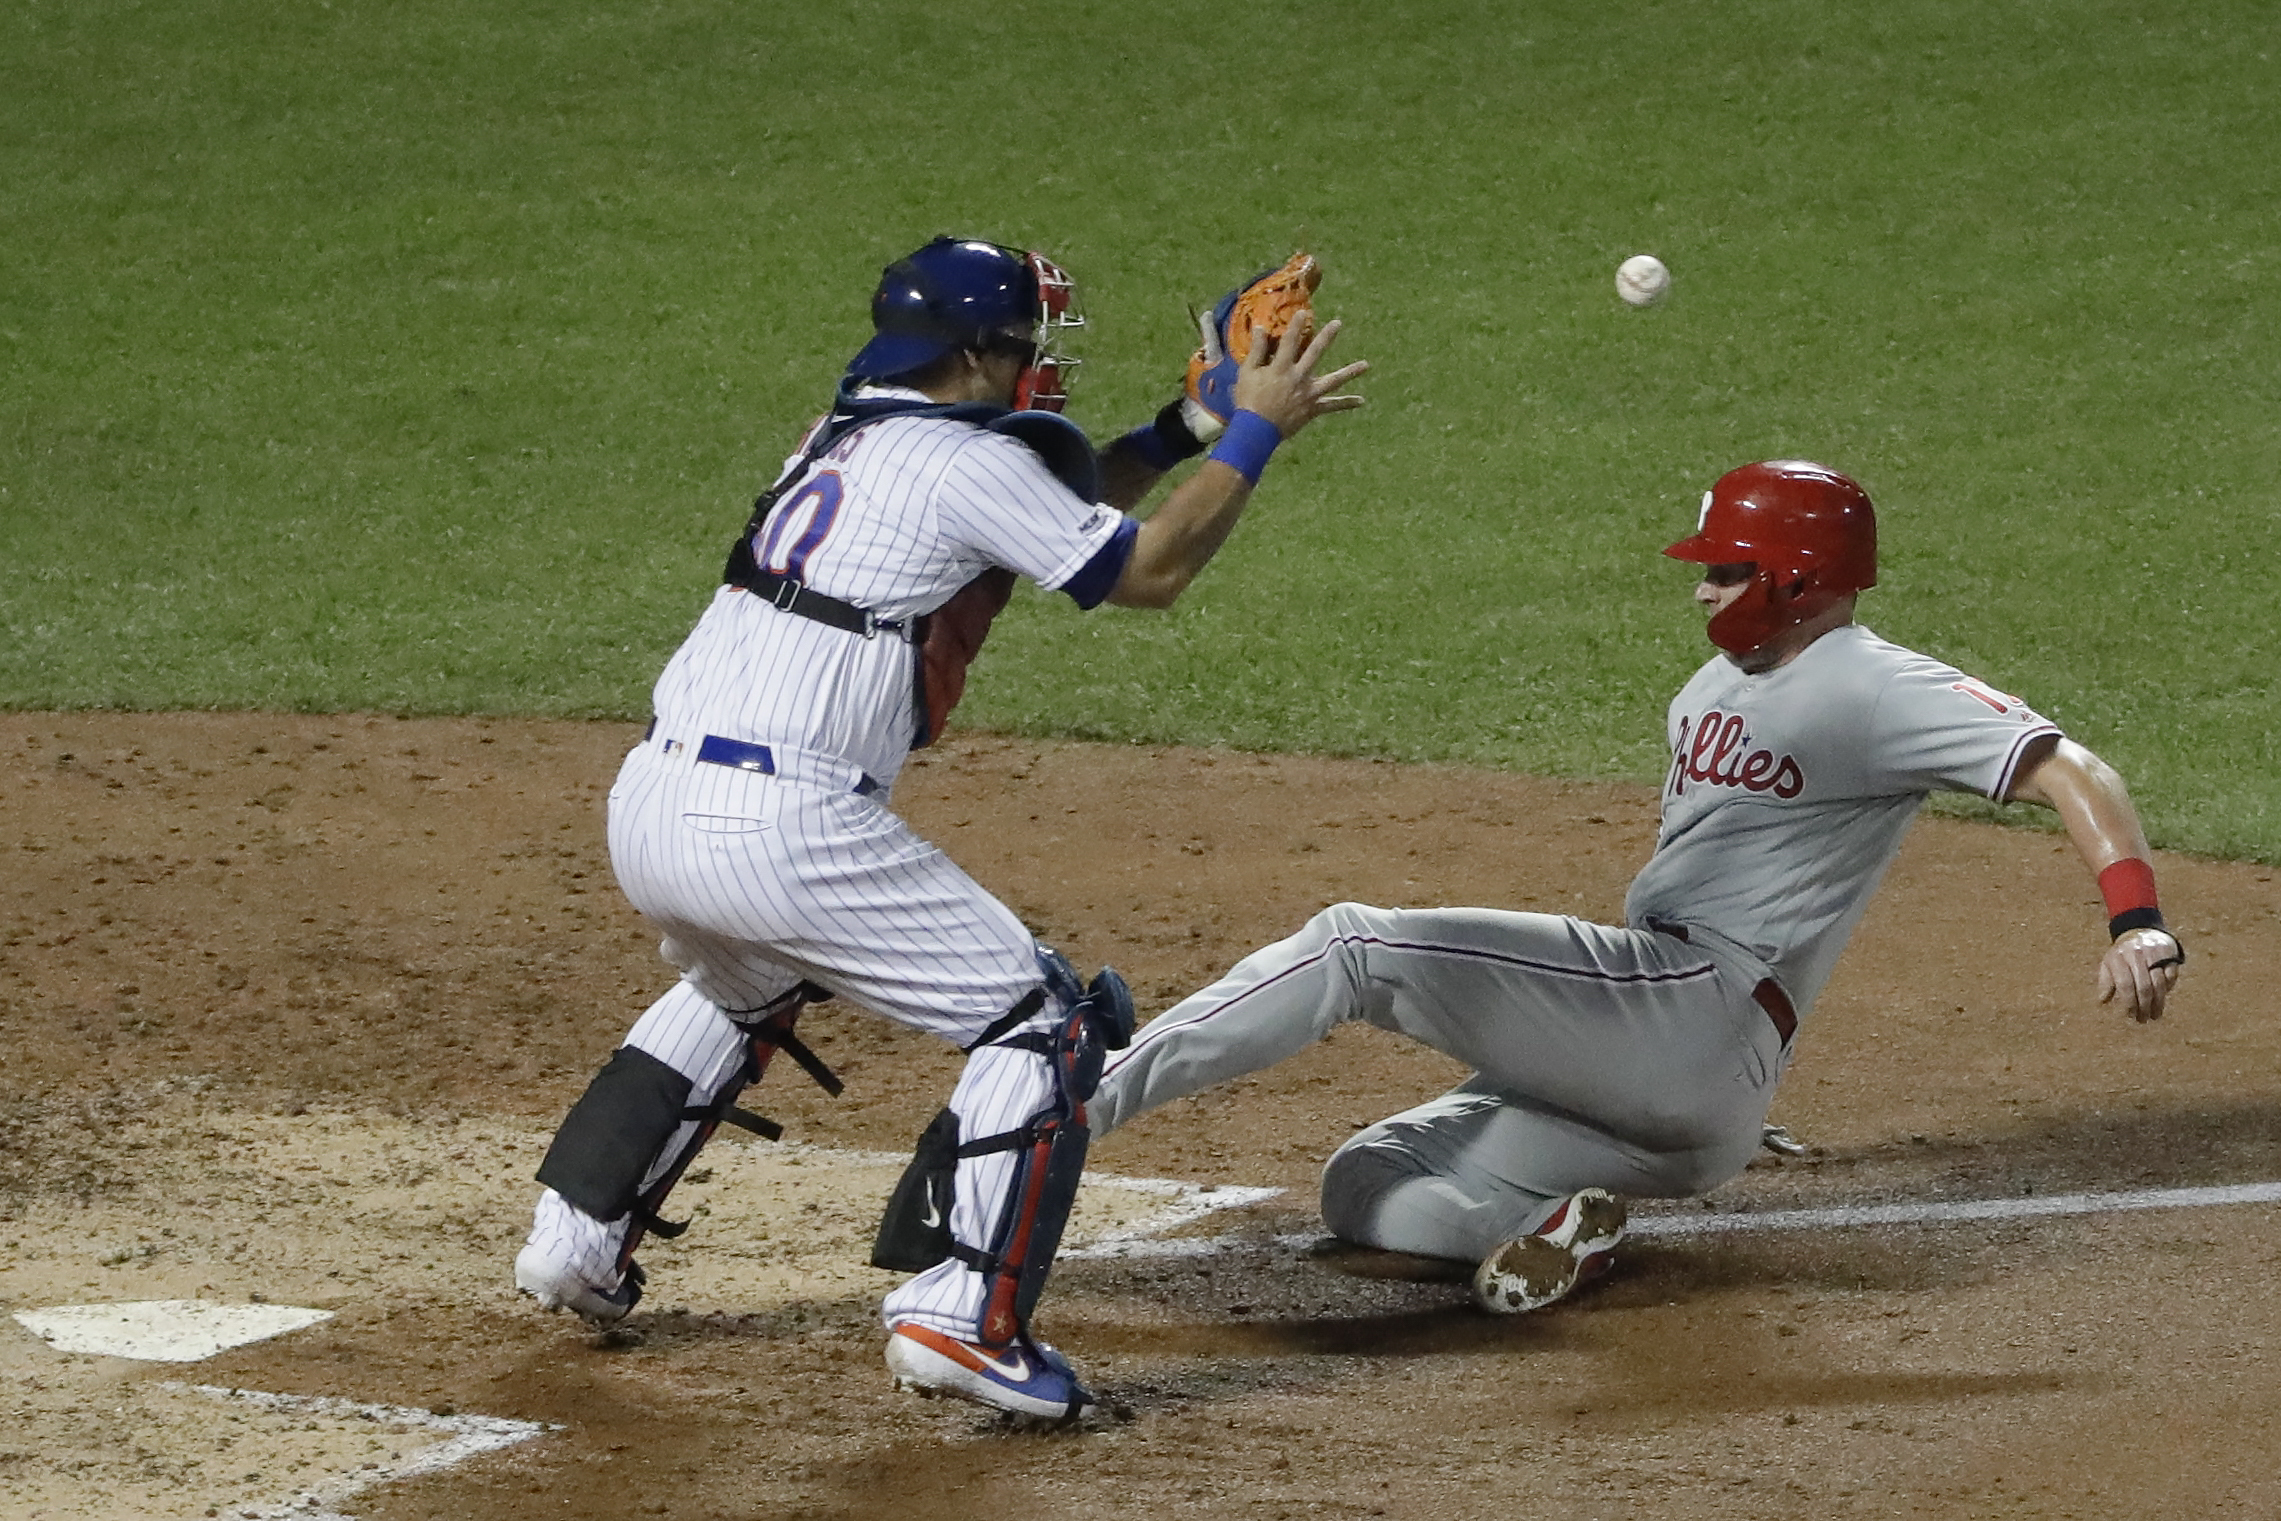 Bruce delivers, Phillies score 5 in 9th to beat Mets 7-2